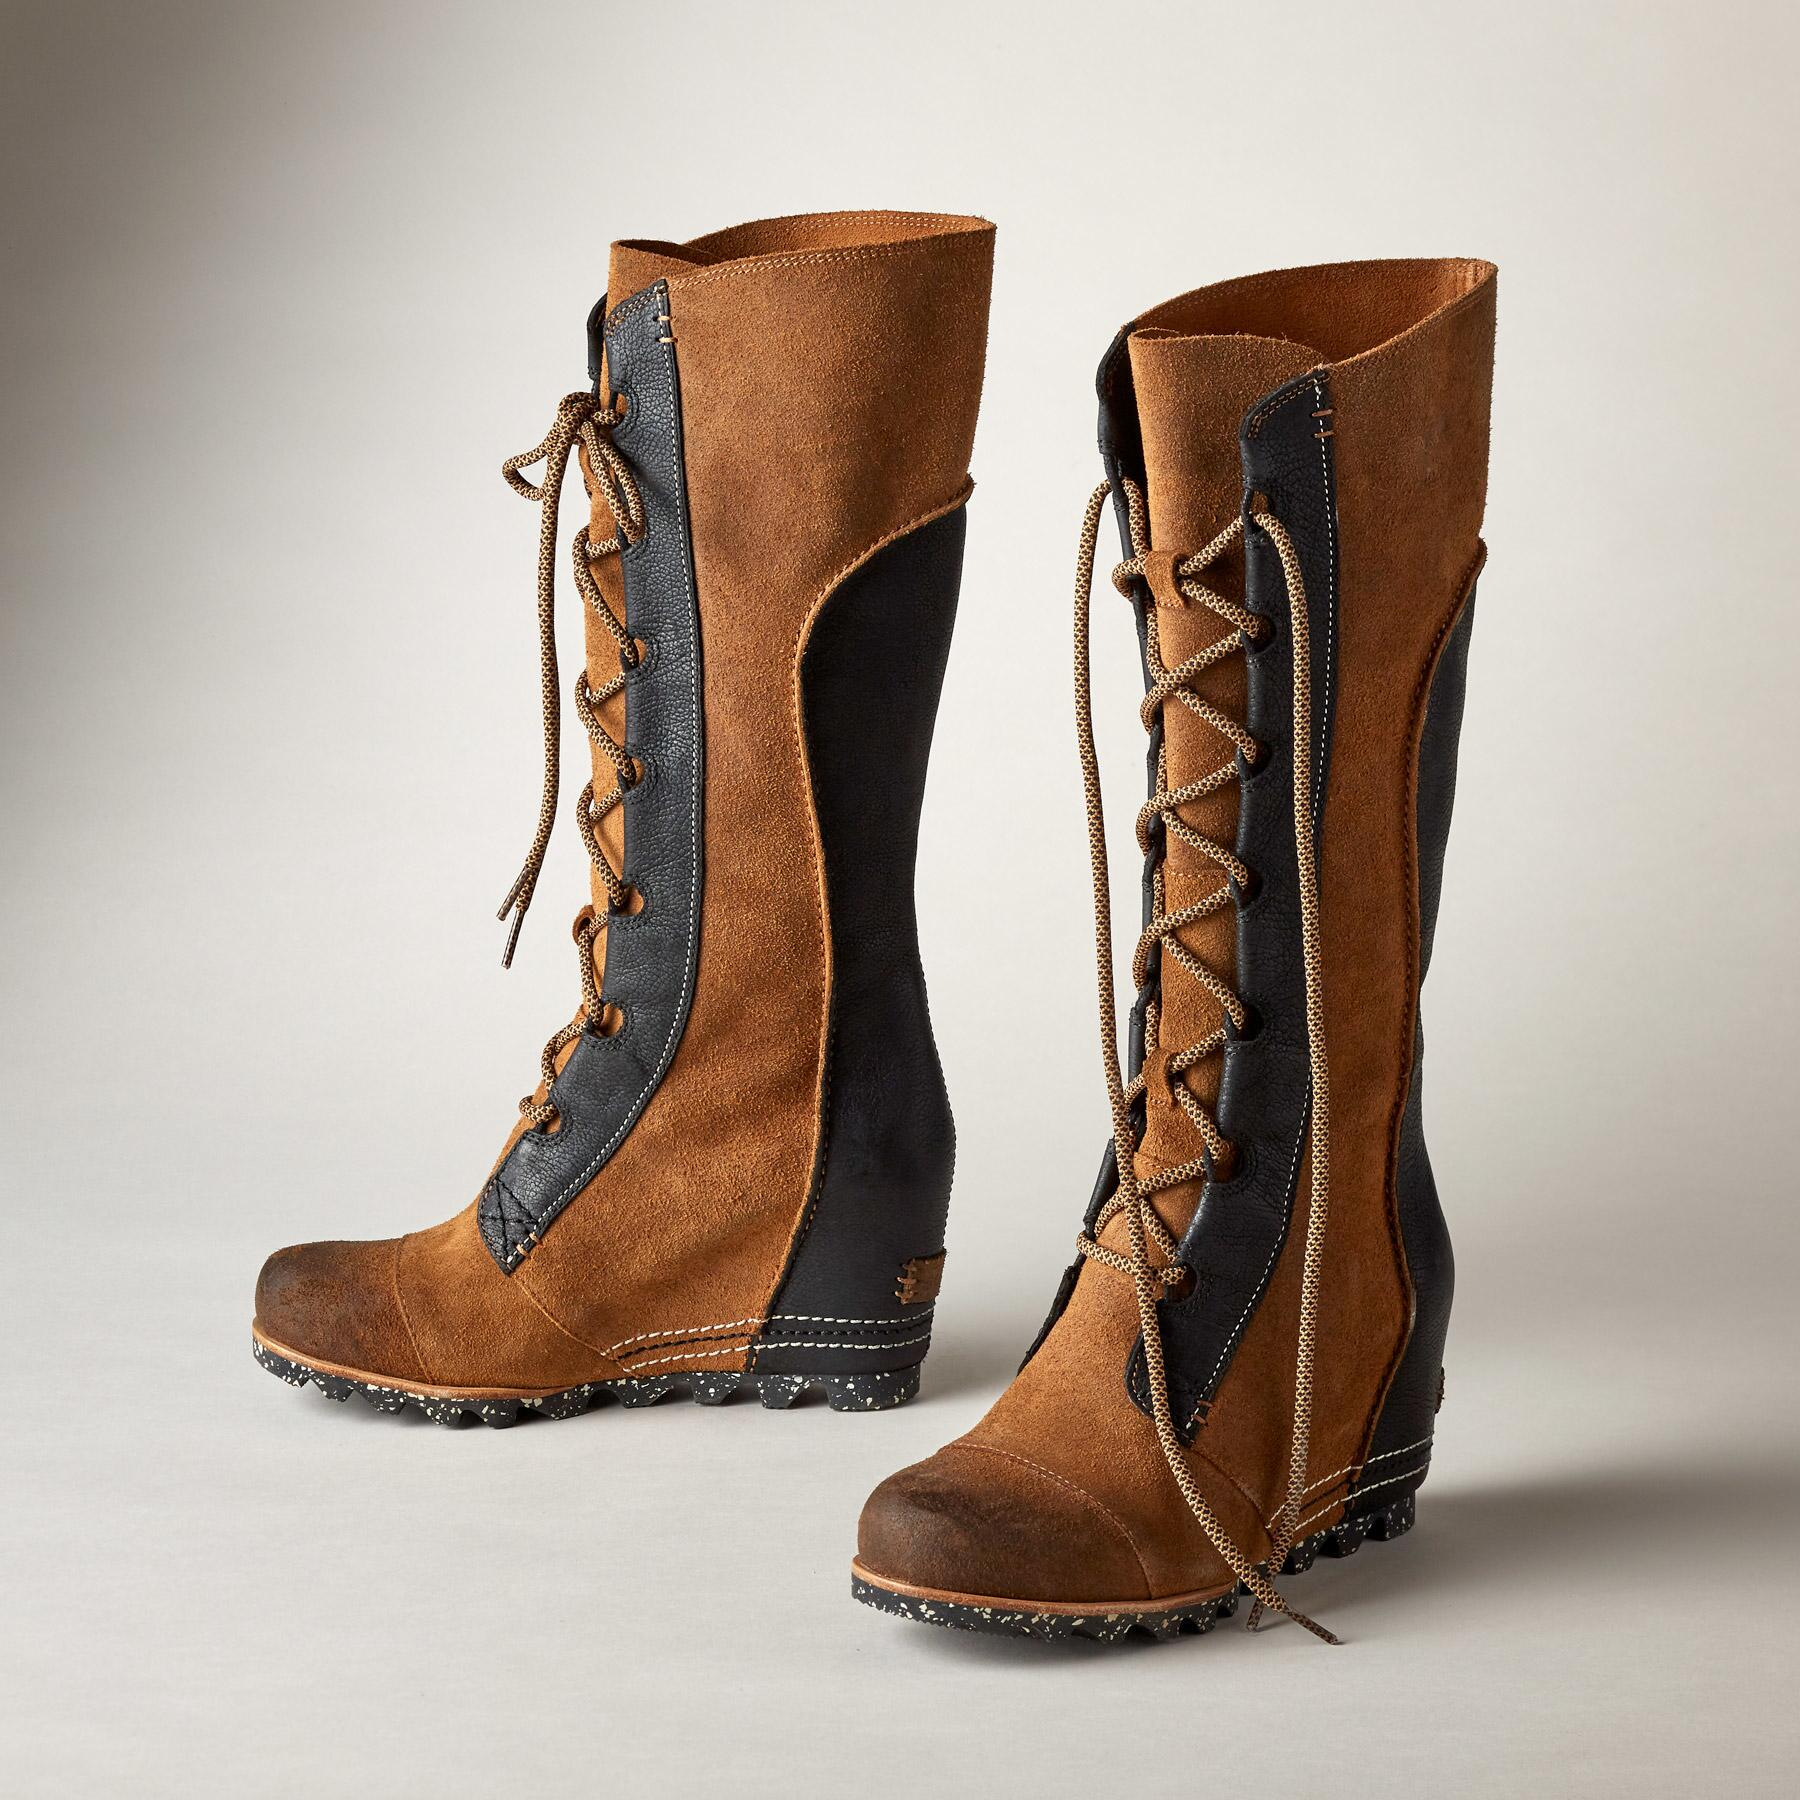 c1c9965cfa4 CATE THE GREAT BOOTS BY SOREL  View 2